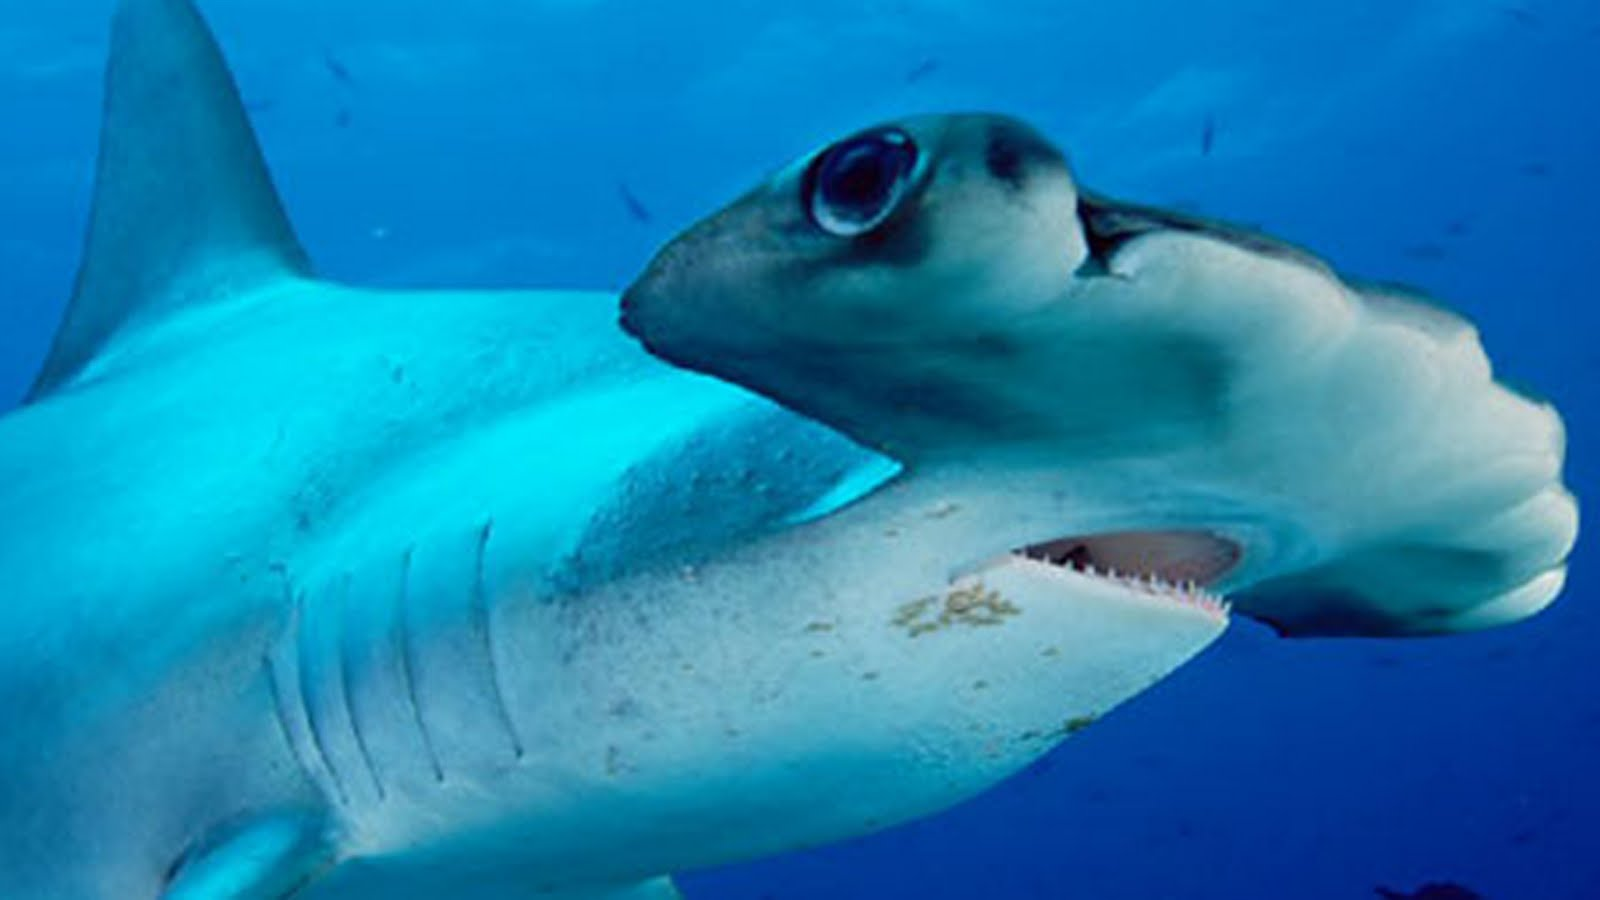 RTSea Blog: observations on oceans, sharks and nature ...